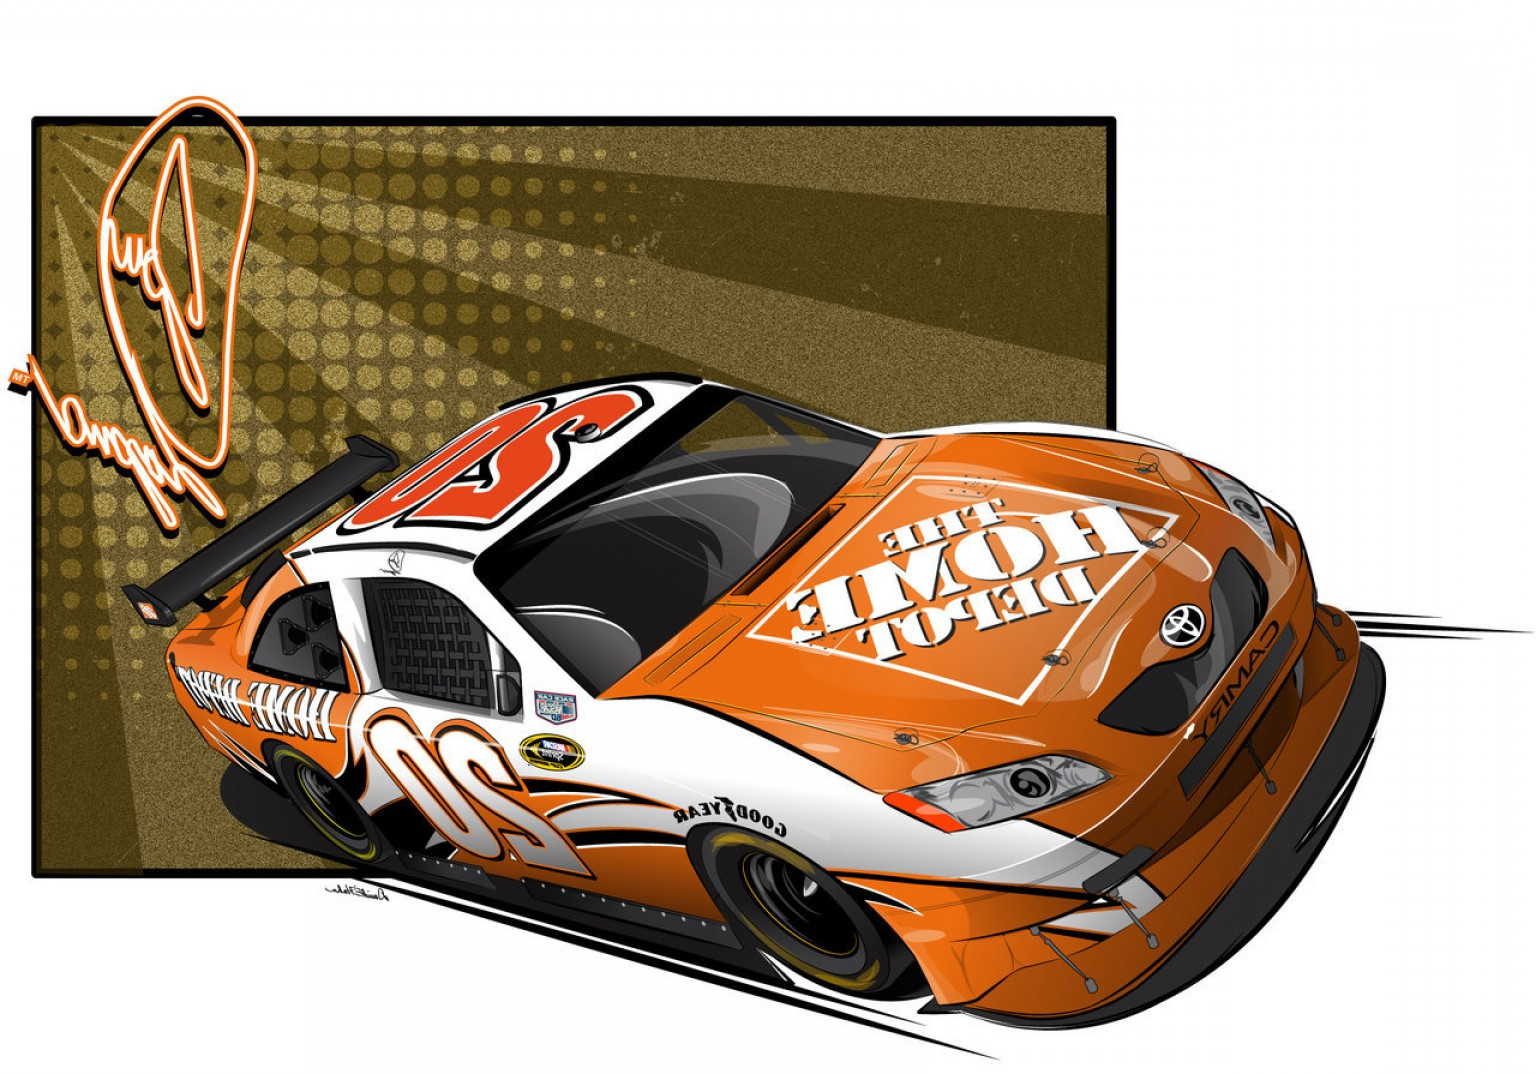 png download Free download clip art. Nascar clipart home depot.